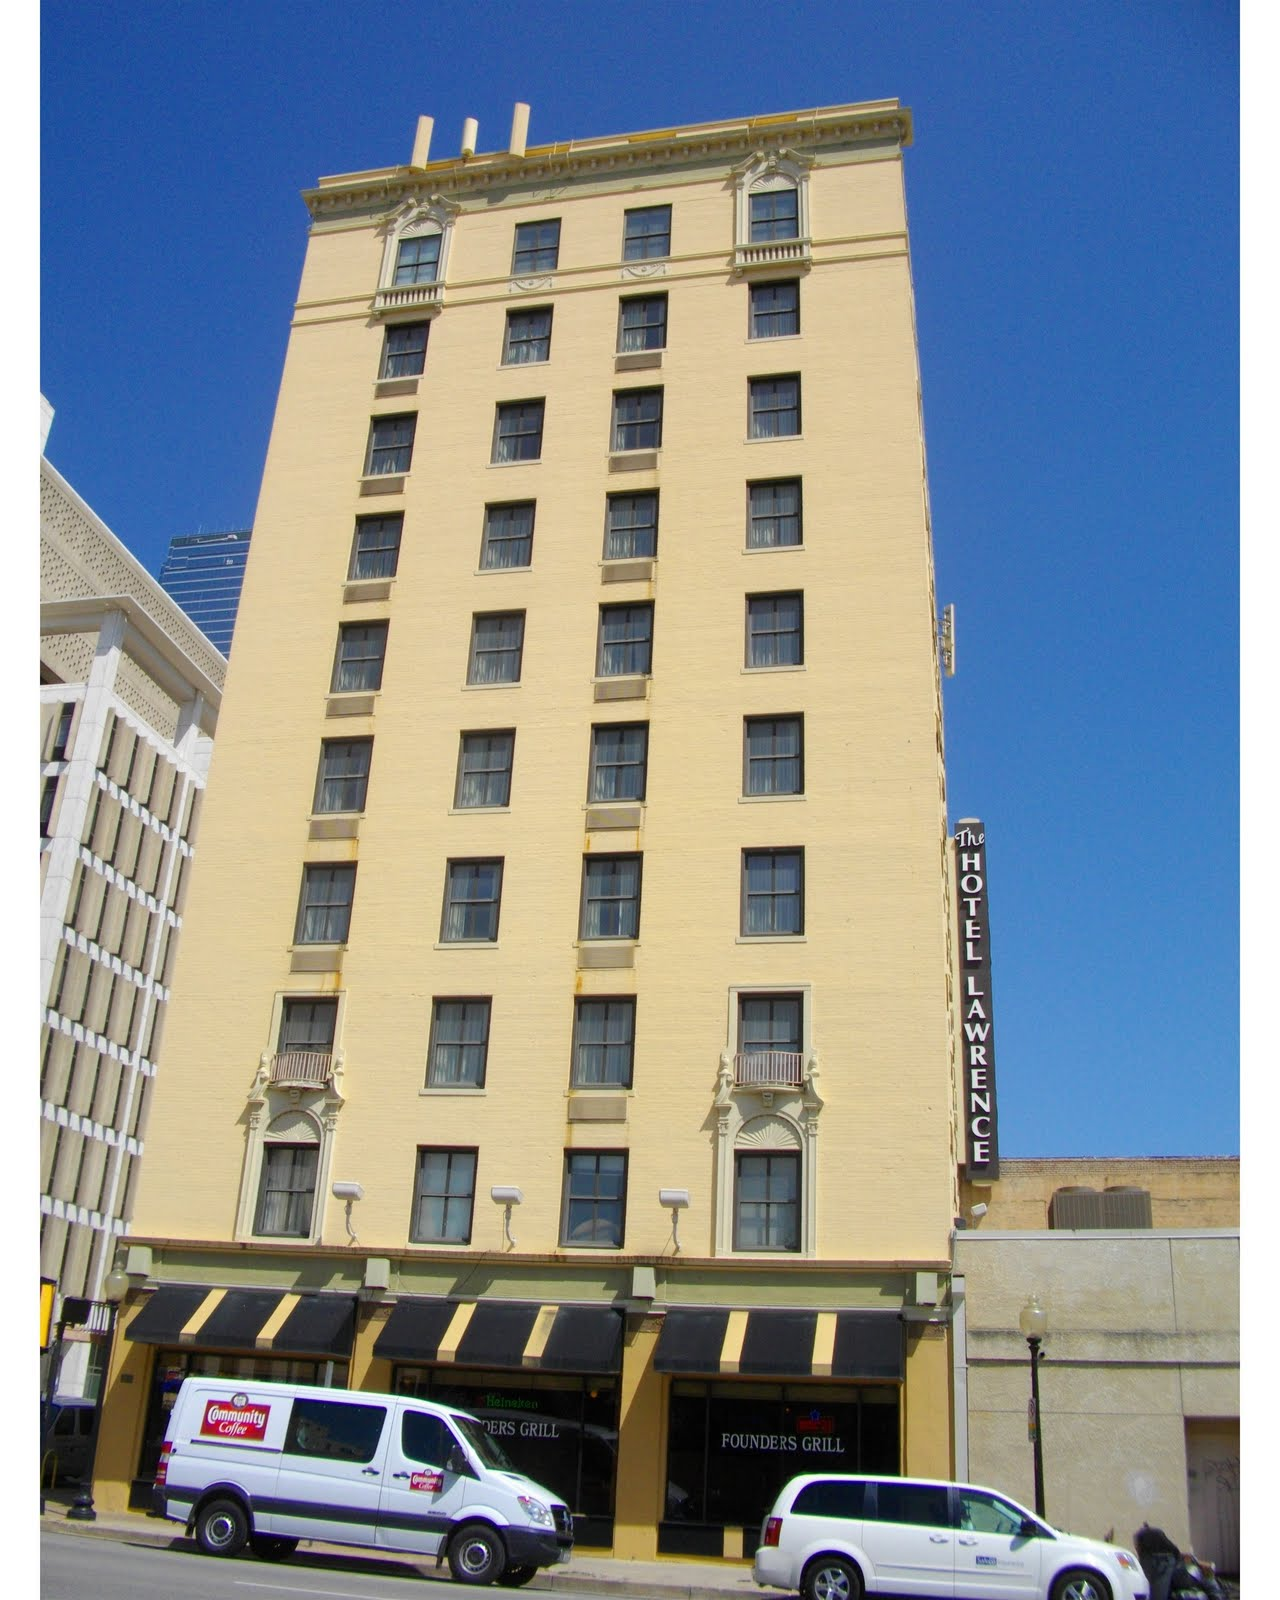 The Hotel Lawrence In Dallas Is A Nice Old Which Was Built Back 1925 Has History And Aly Some Uninvited Guests